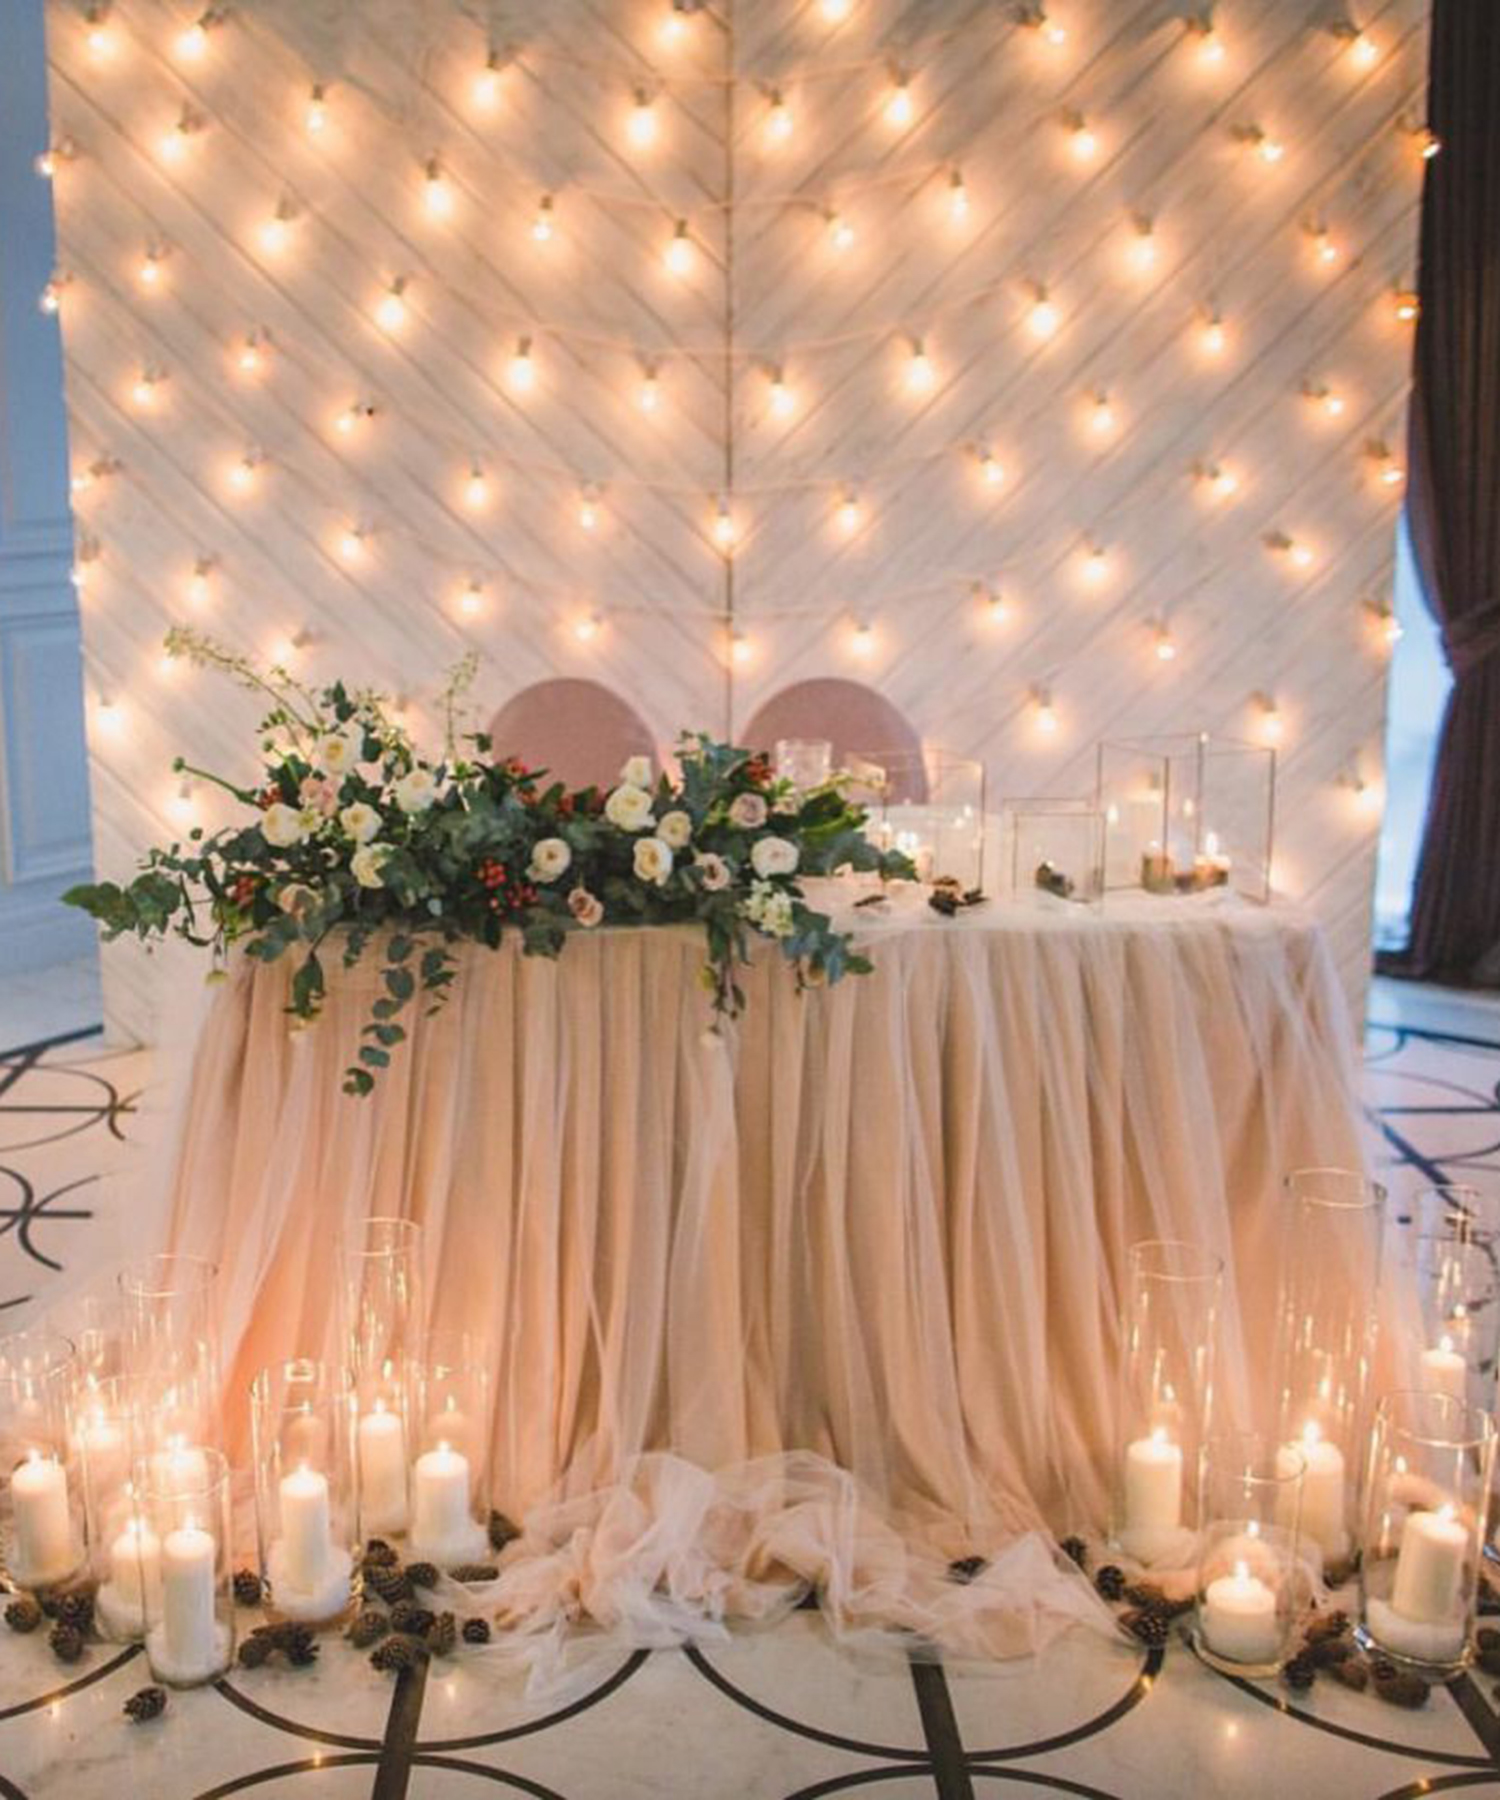 Wedding Altar Rental Houston: Wedding Altar Design & Resource